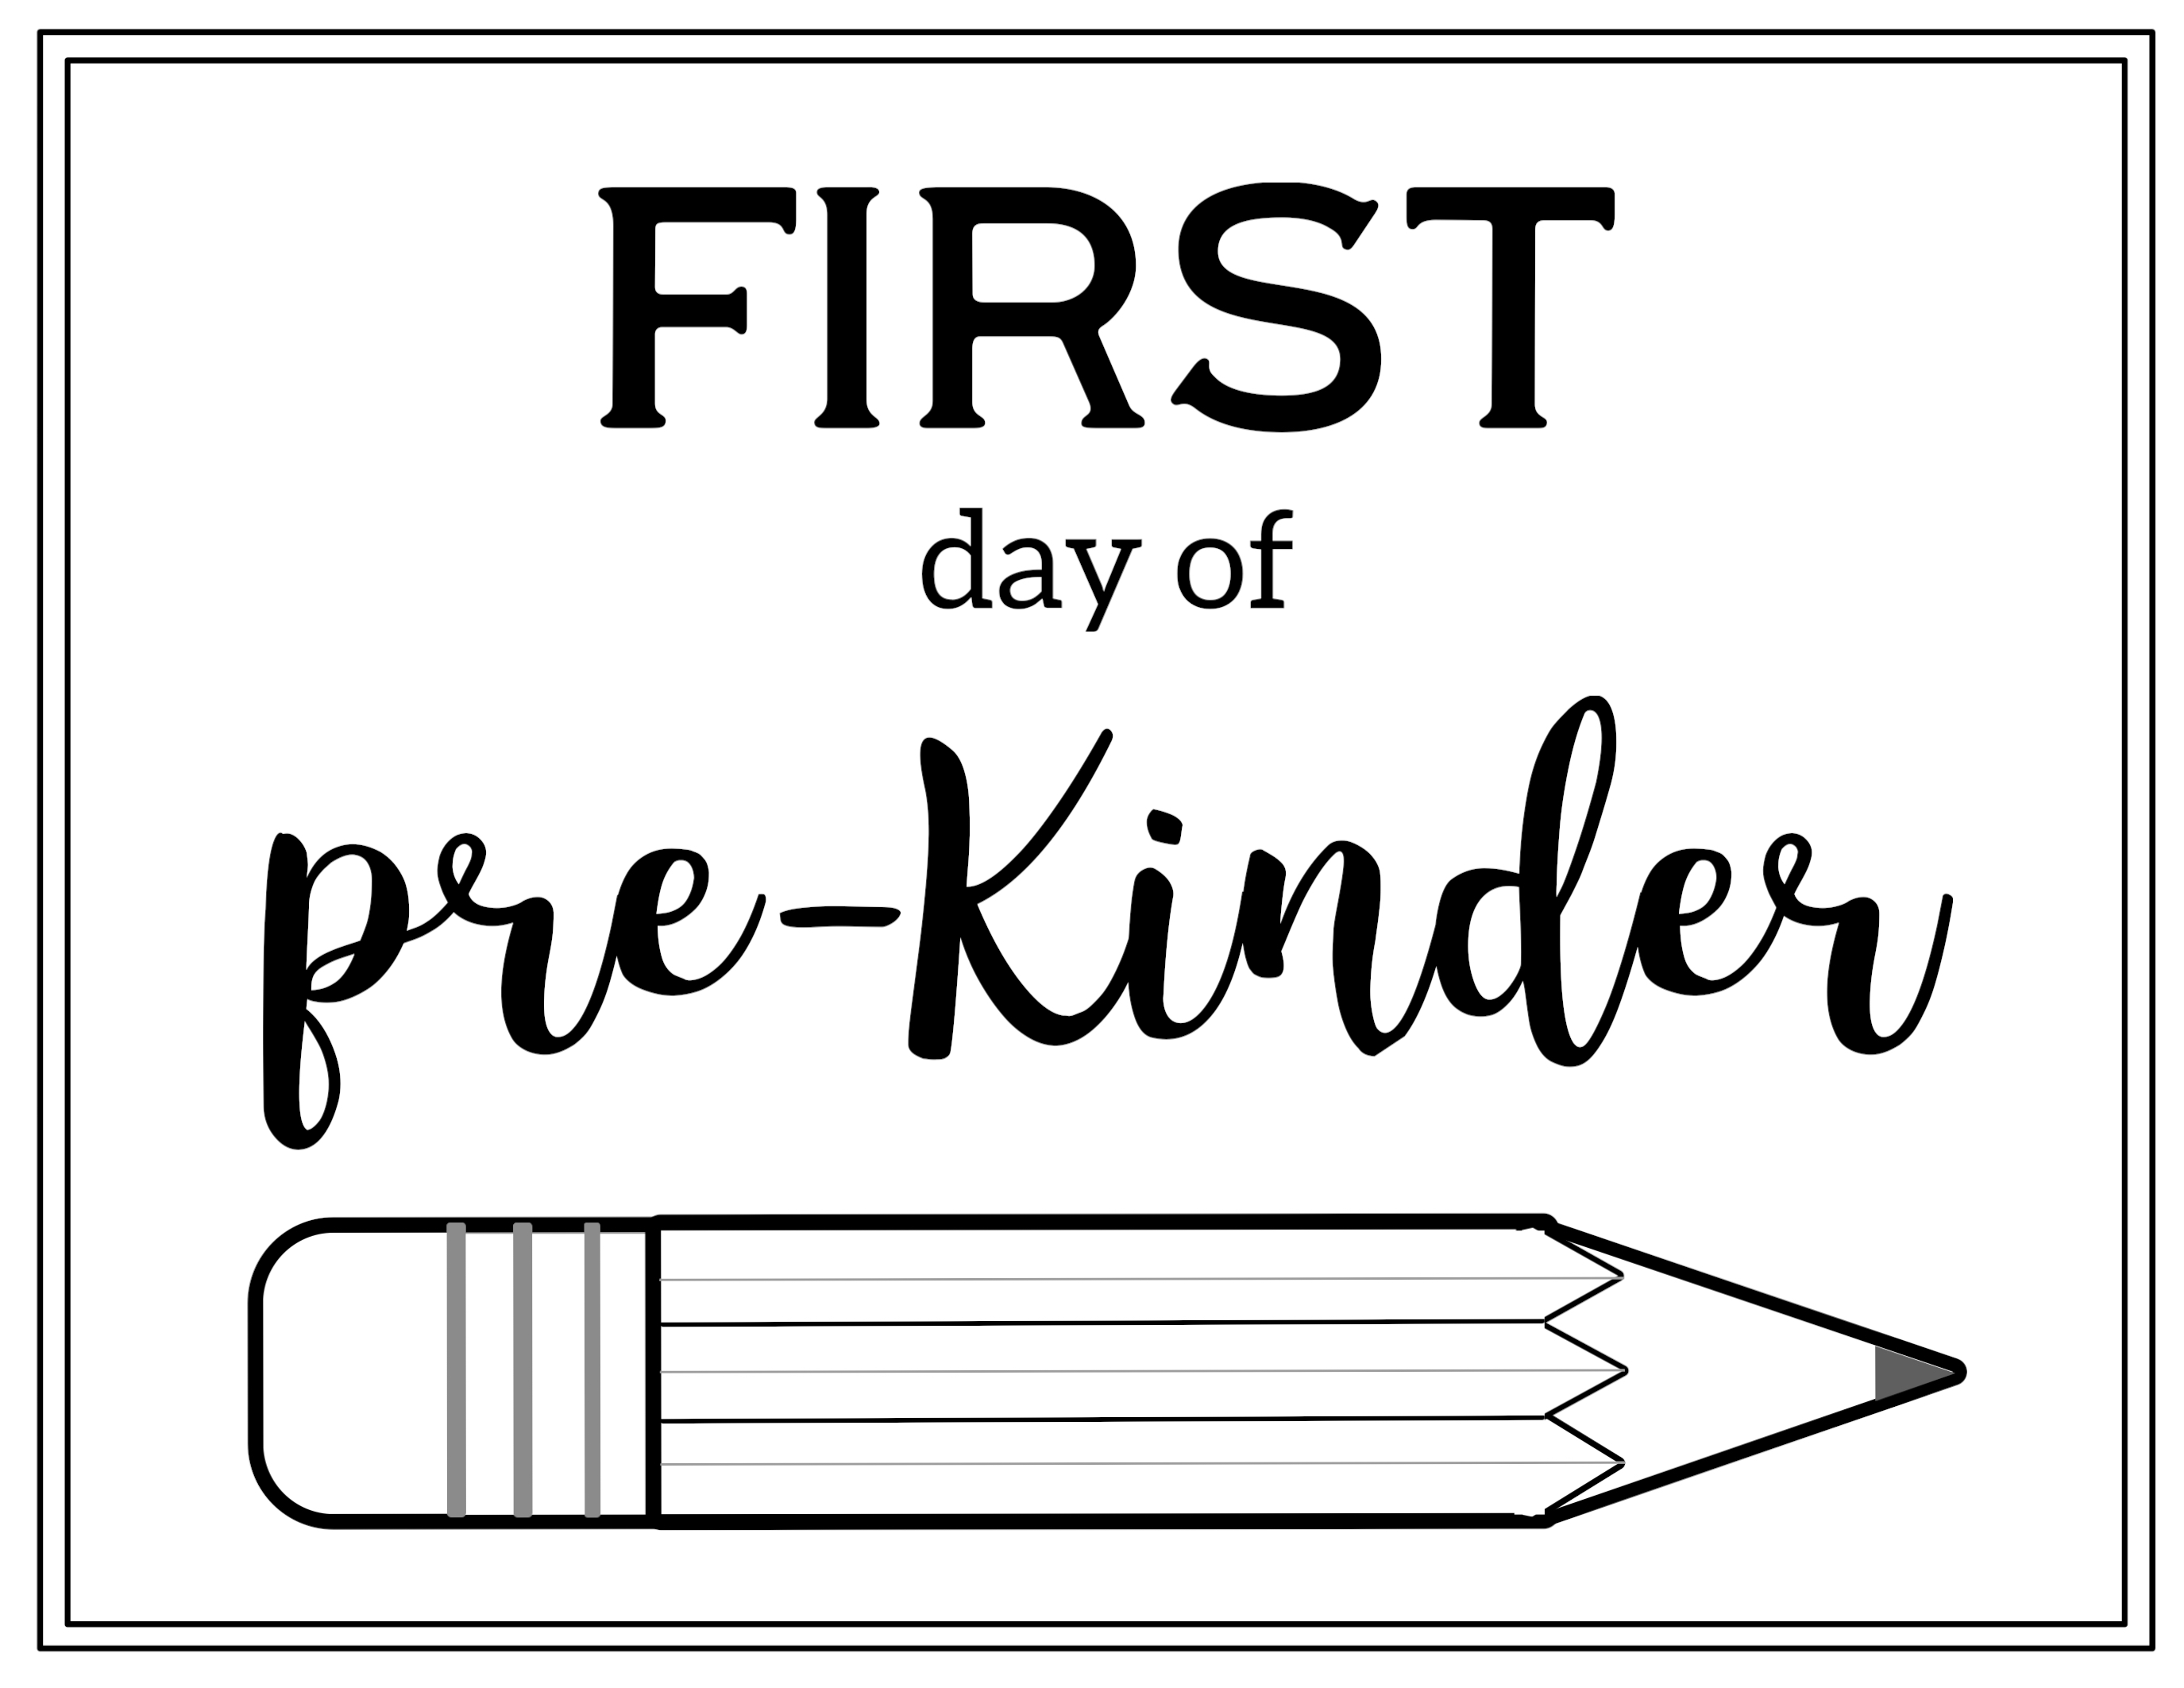 photo about First Day of Pre K Sign Printable known as Free of charge Printable 1st Working day of Higher education Signal Pencil - Paper